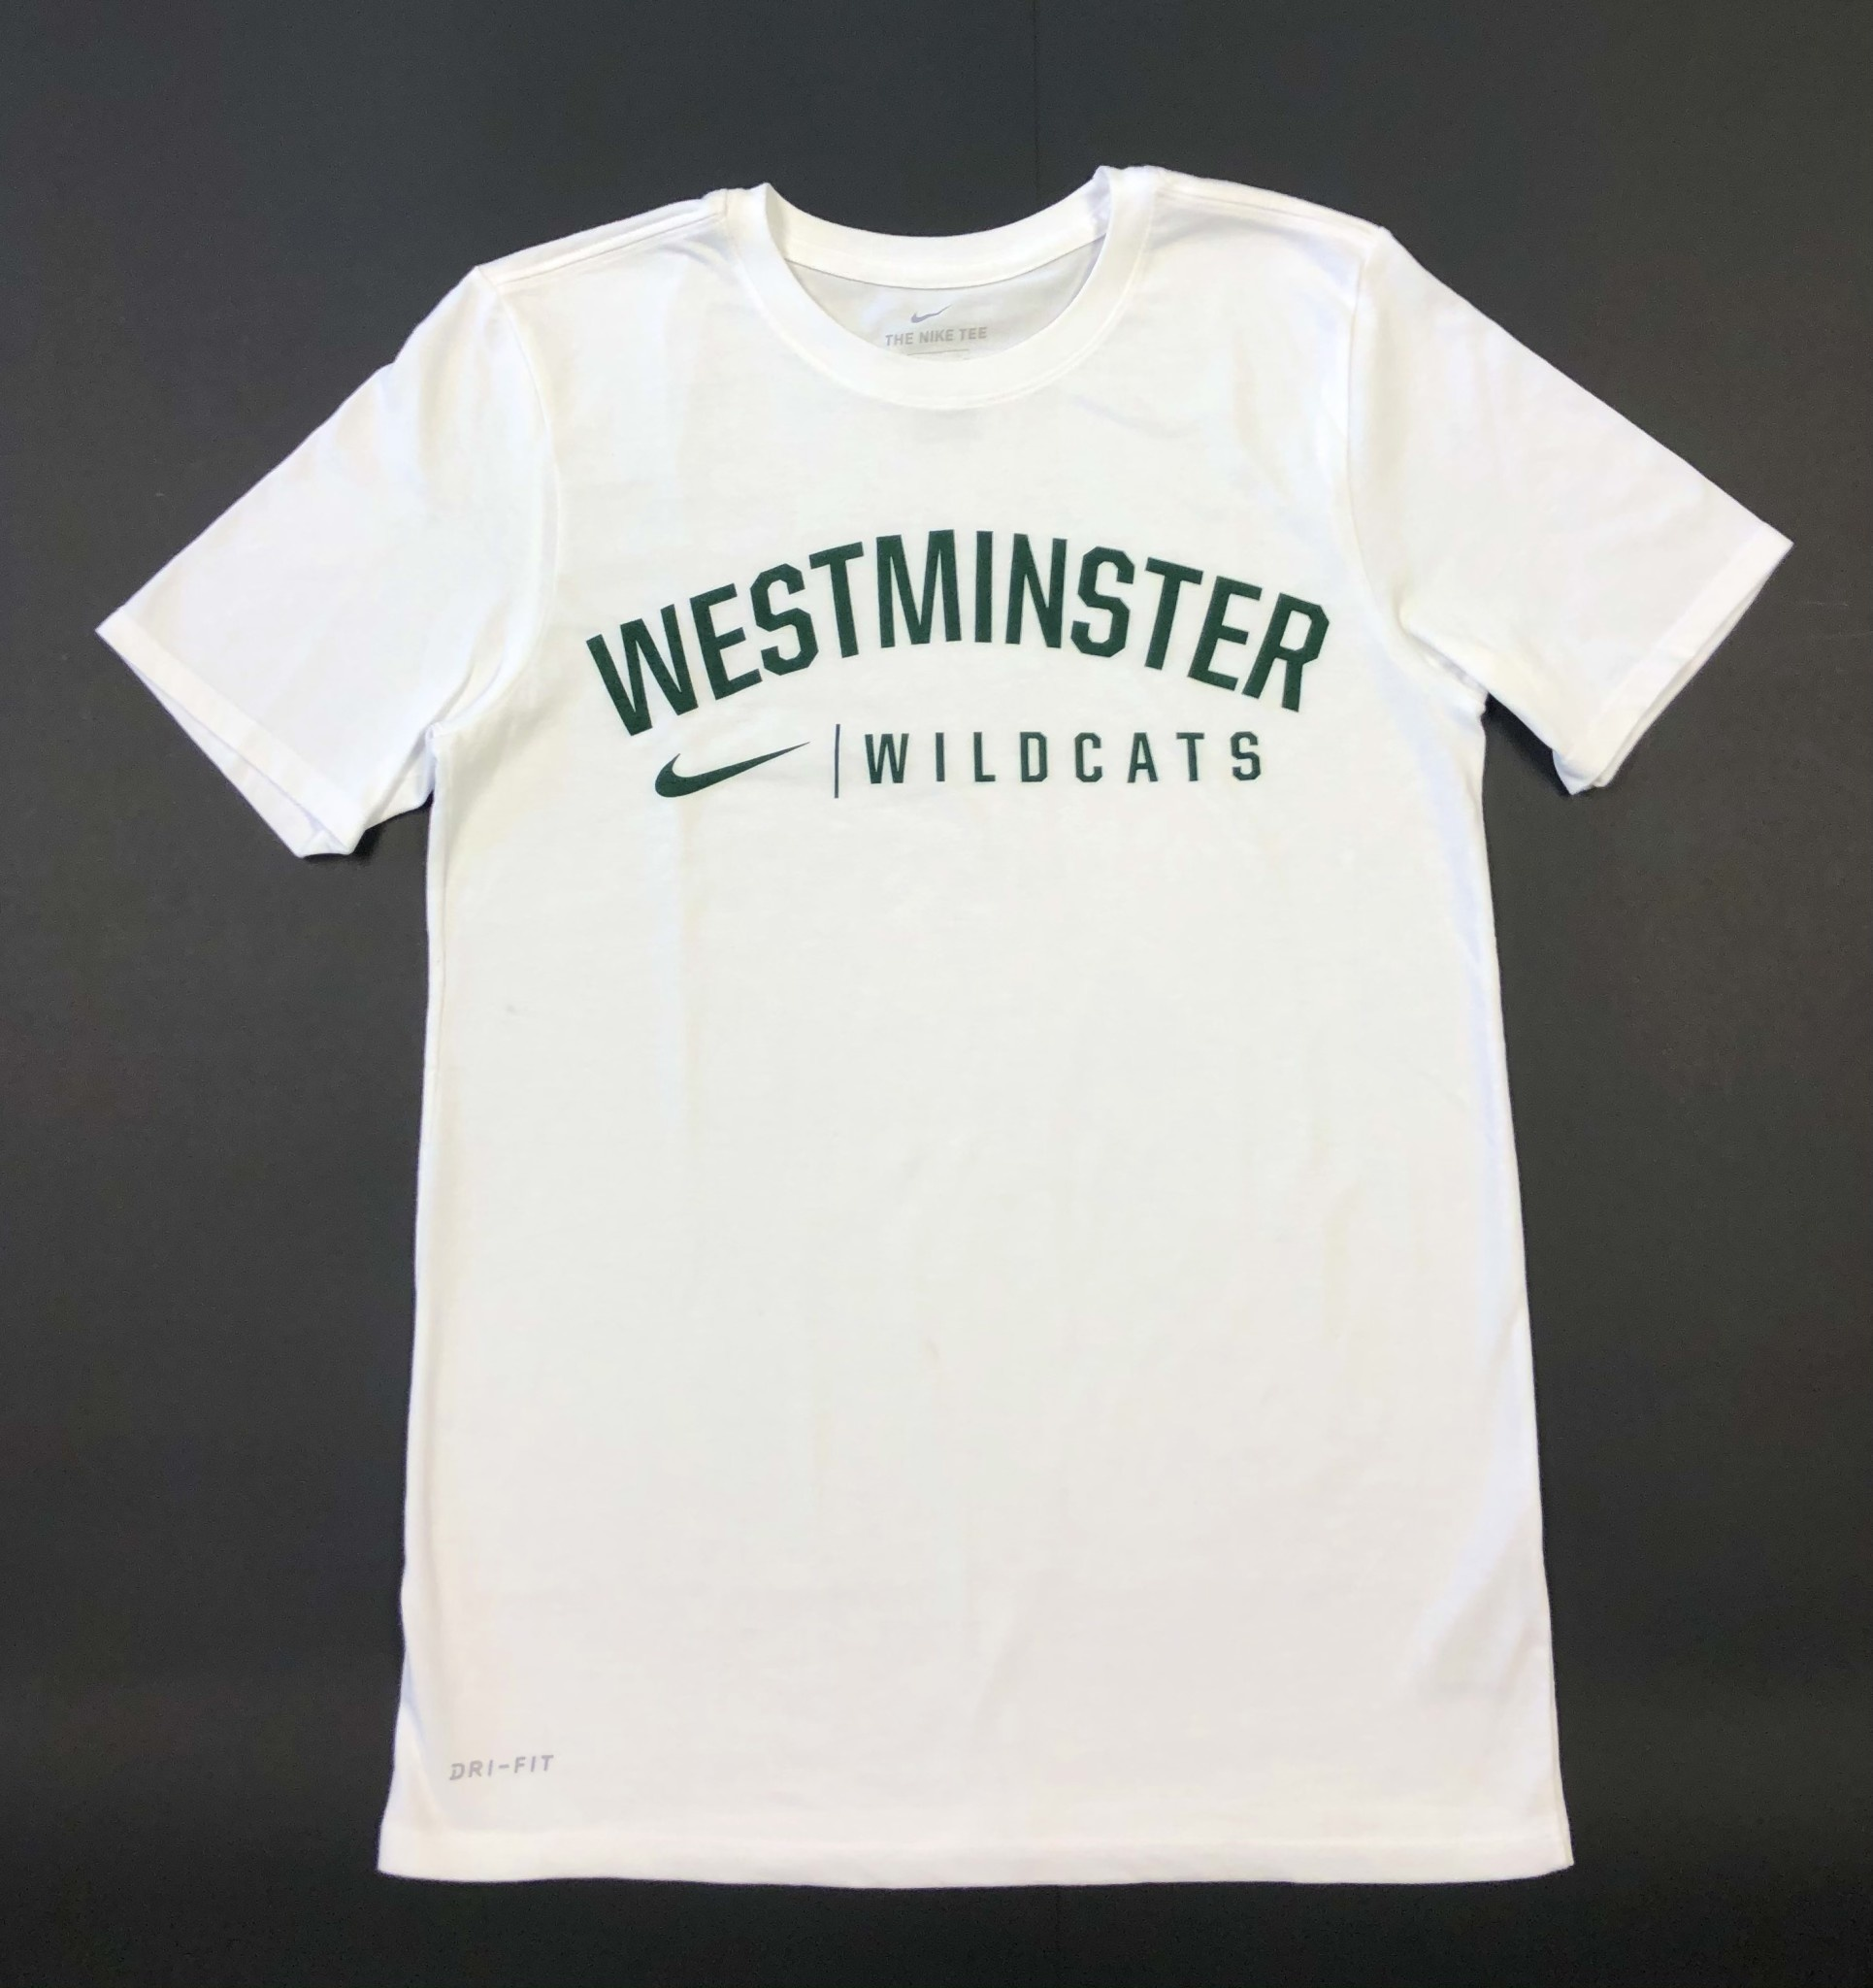 Nike T: Nike Dri-Fit Cotton SS White West Wildcats